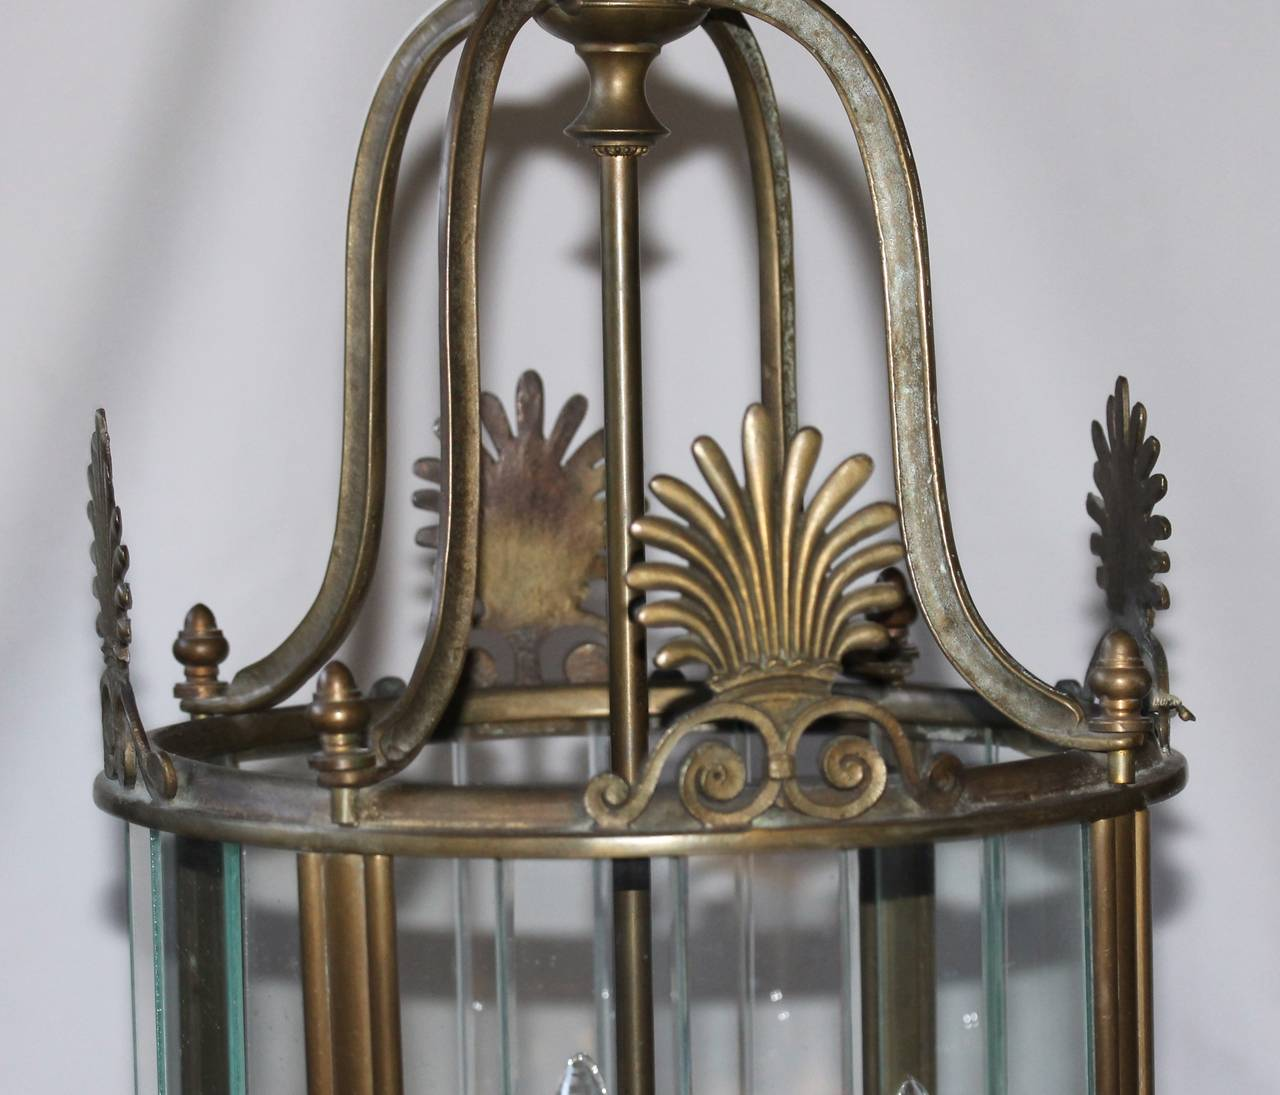 Large Italian Neoclassic Bronze Hall Lantern Pendant Light For Sale 1